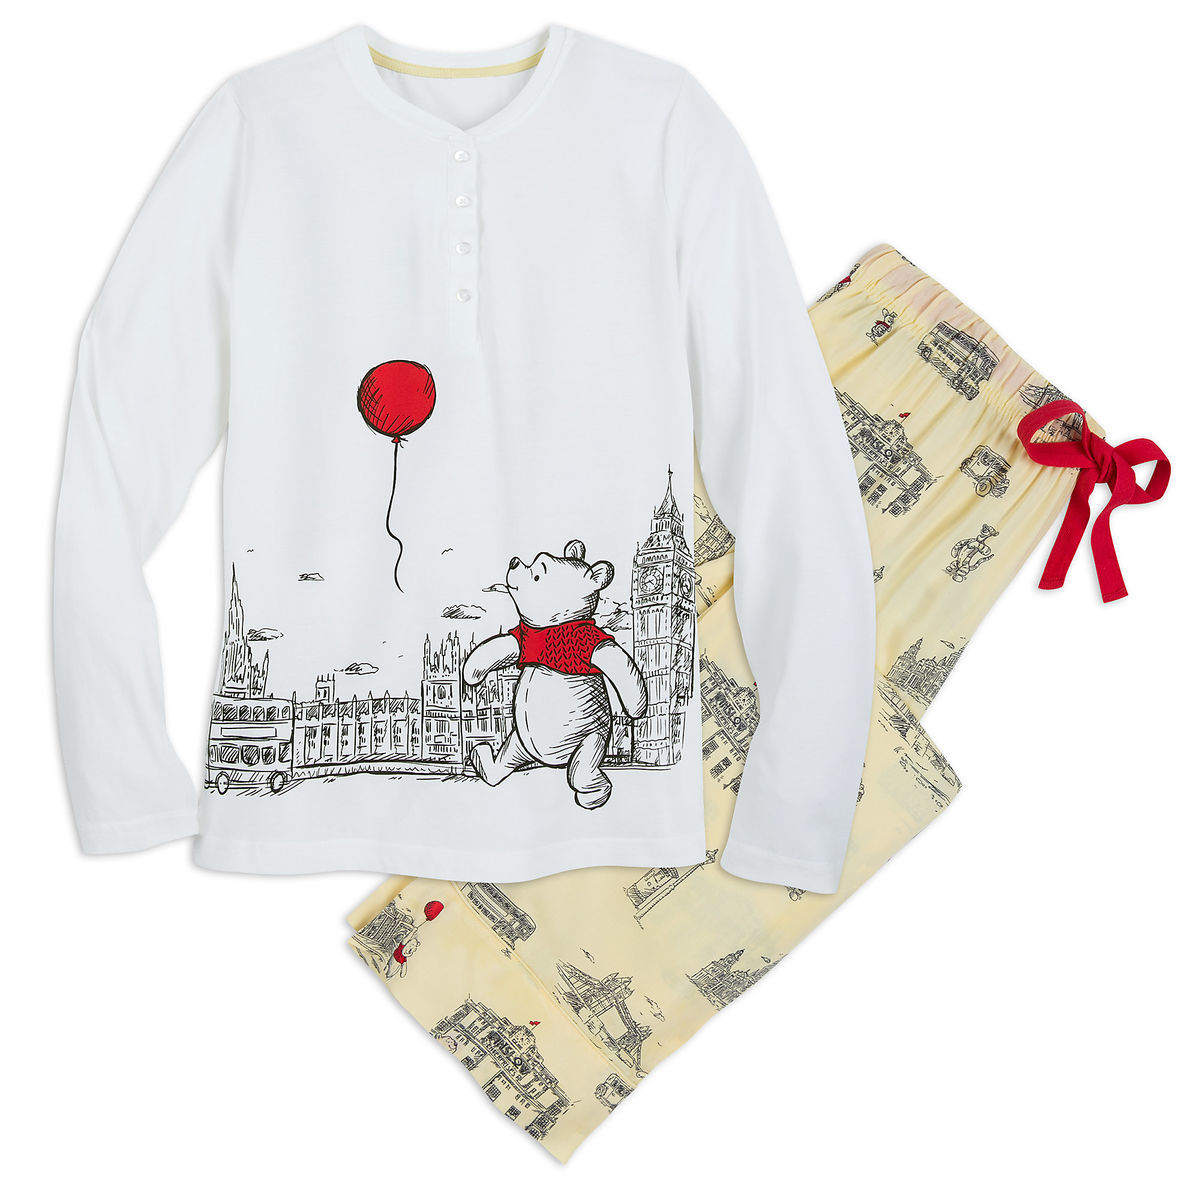 9035b420f4 Product Image of Winnie the Pooh Pajamas for Women - Christopher Robin   1